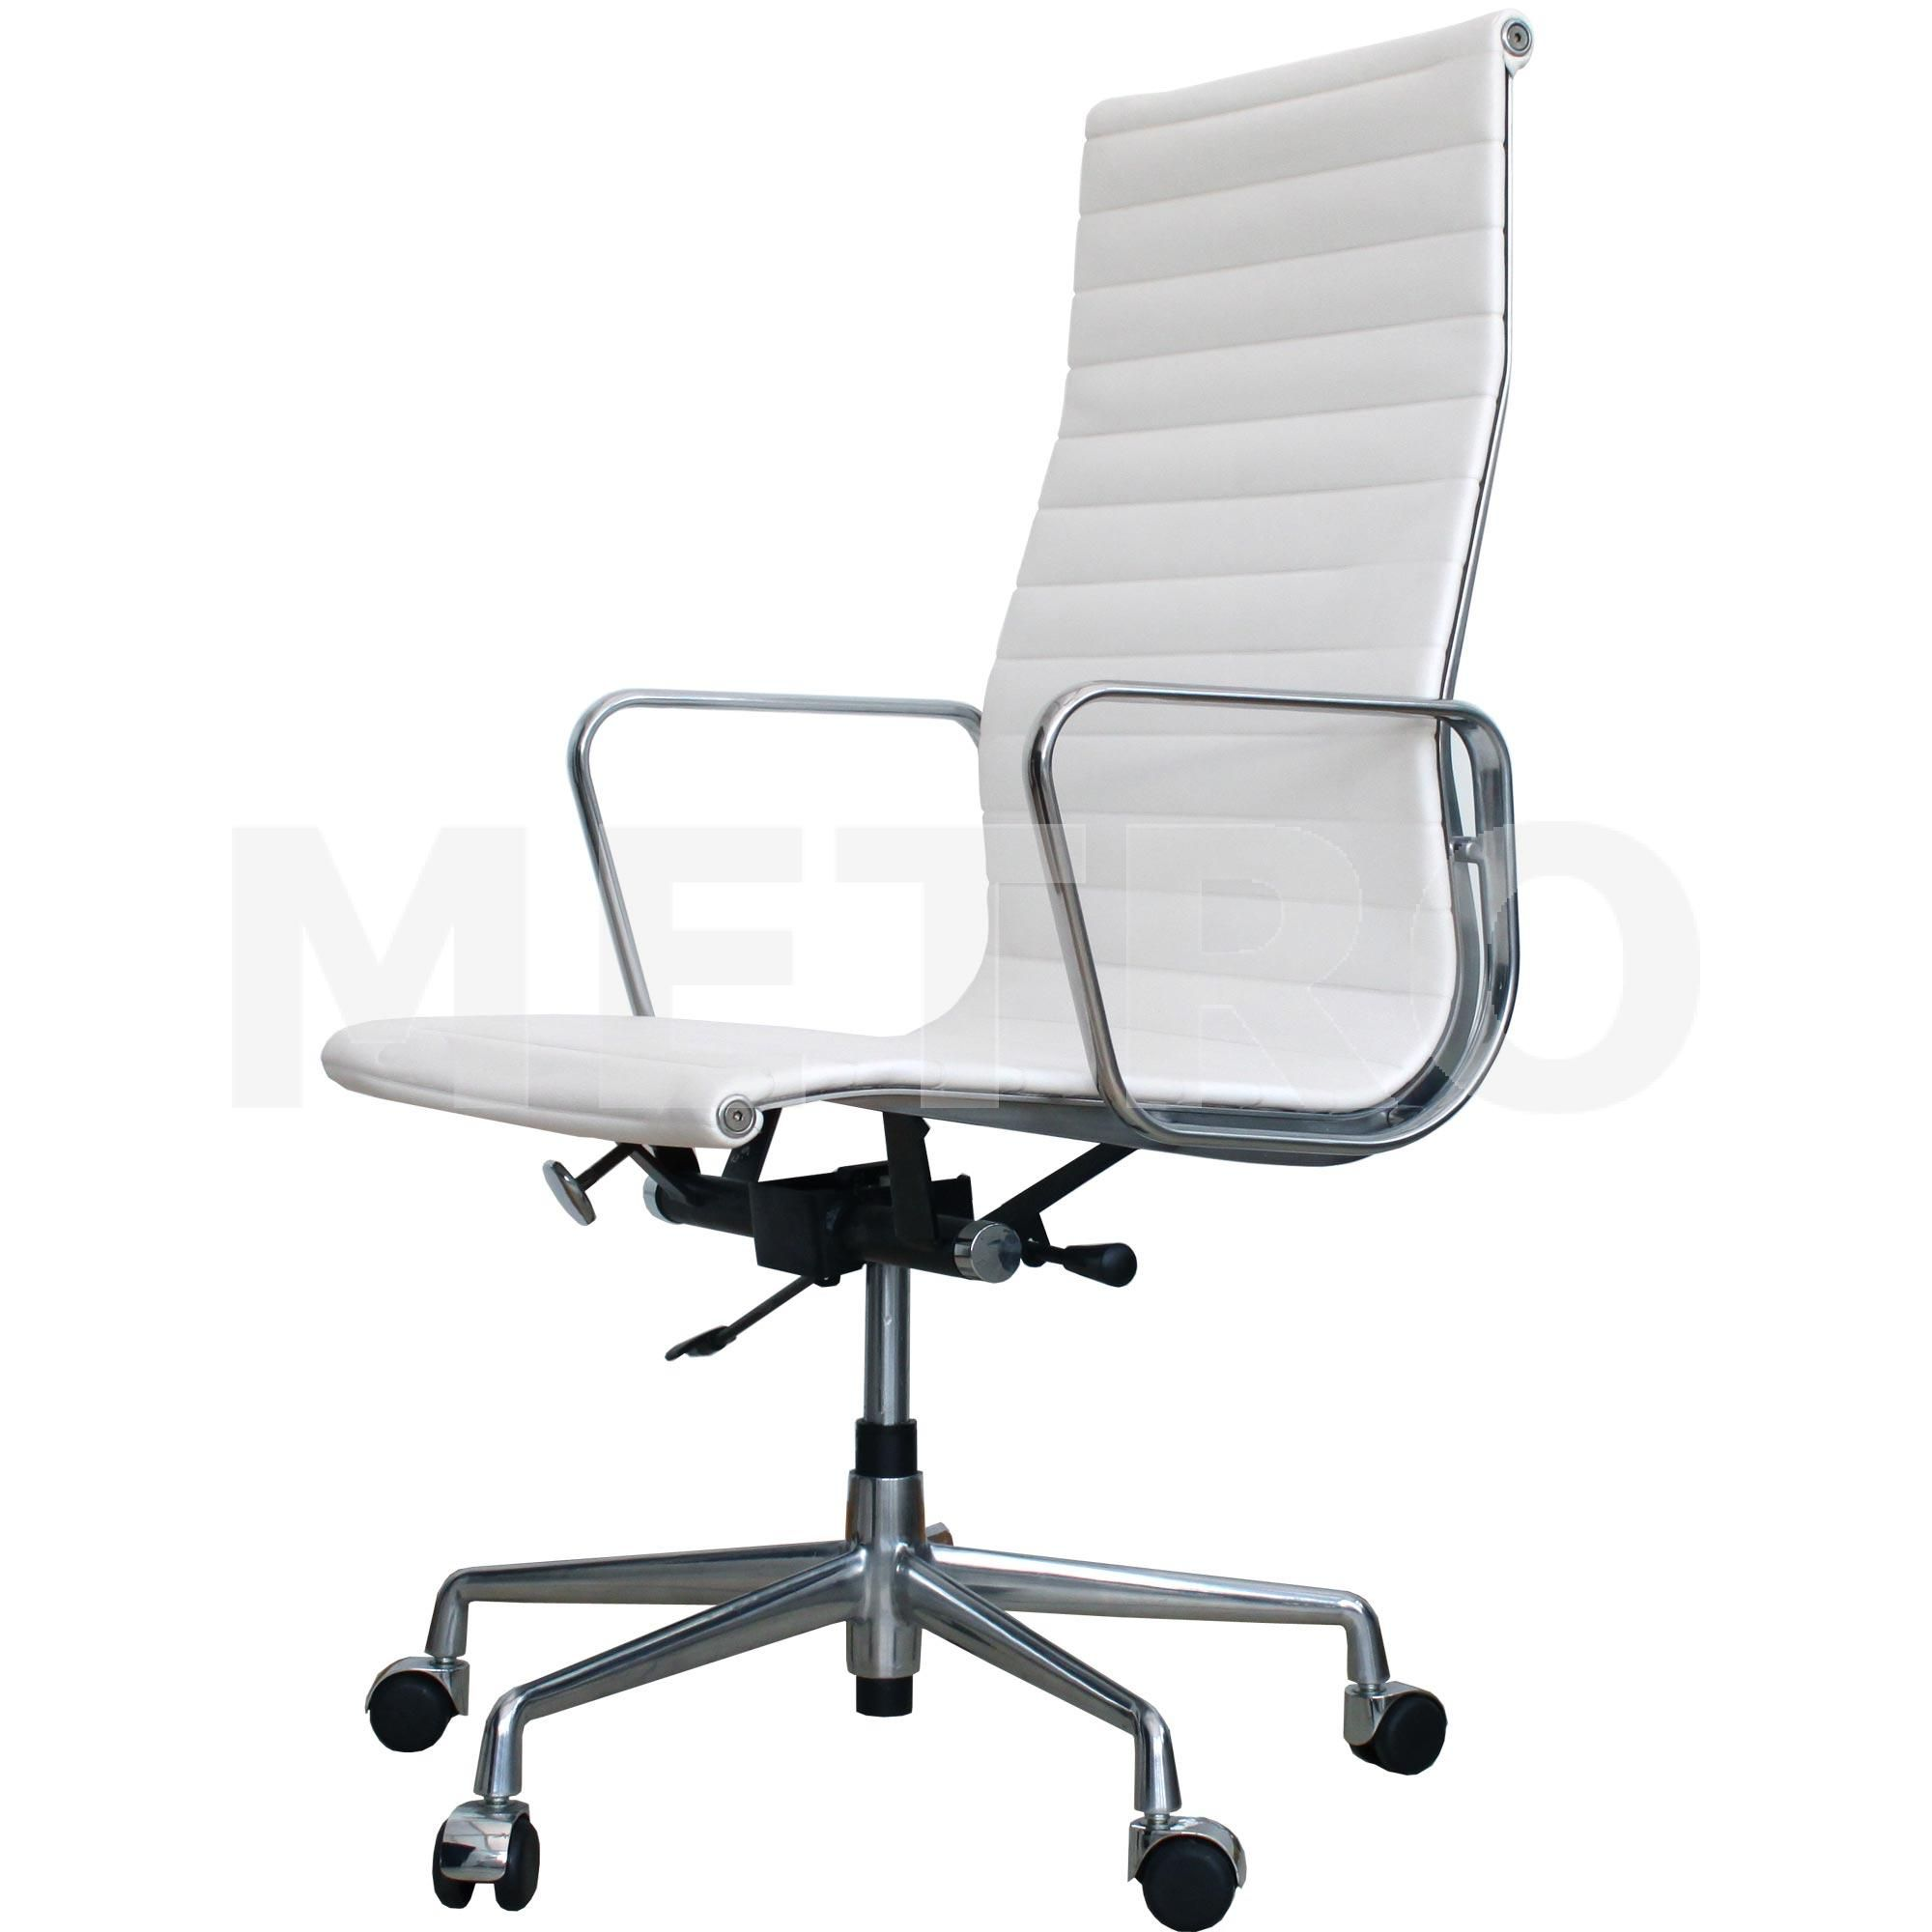 office chair chairs mydeal office furniture chairs furniture white